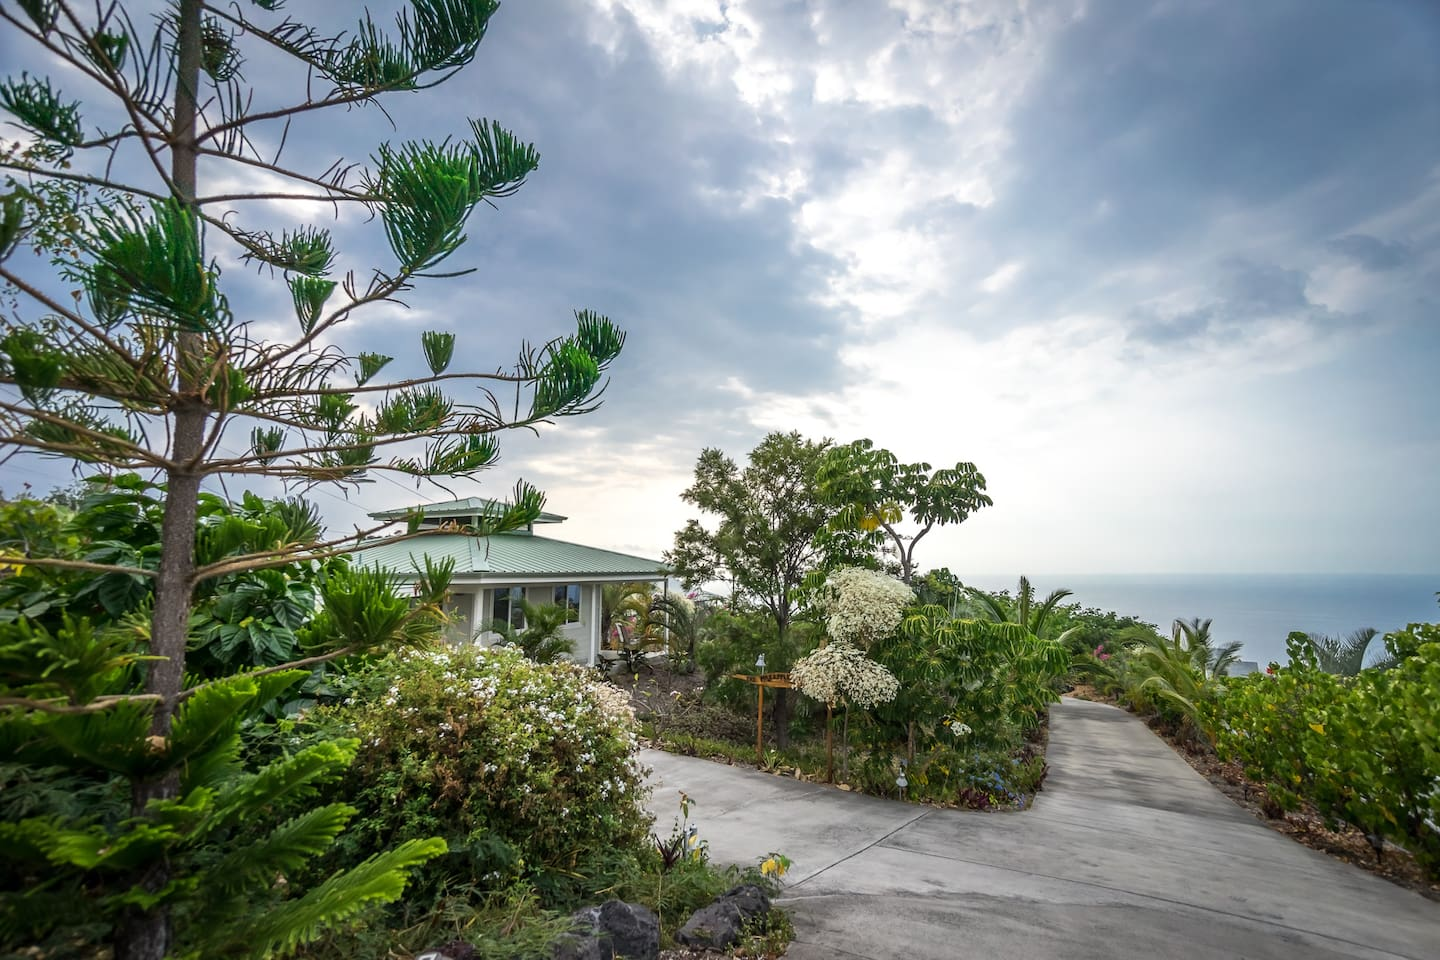 Enjoy the tropical landscape with ocean views at this stand alone comfortable home.